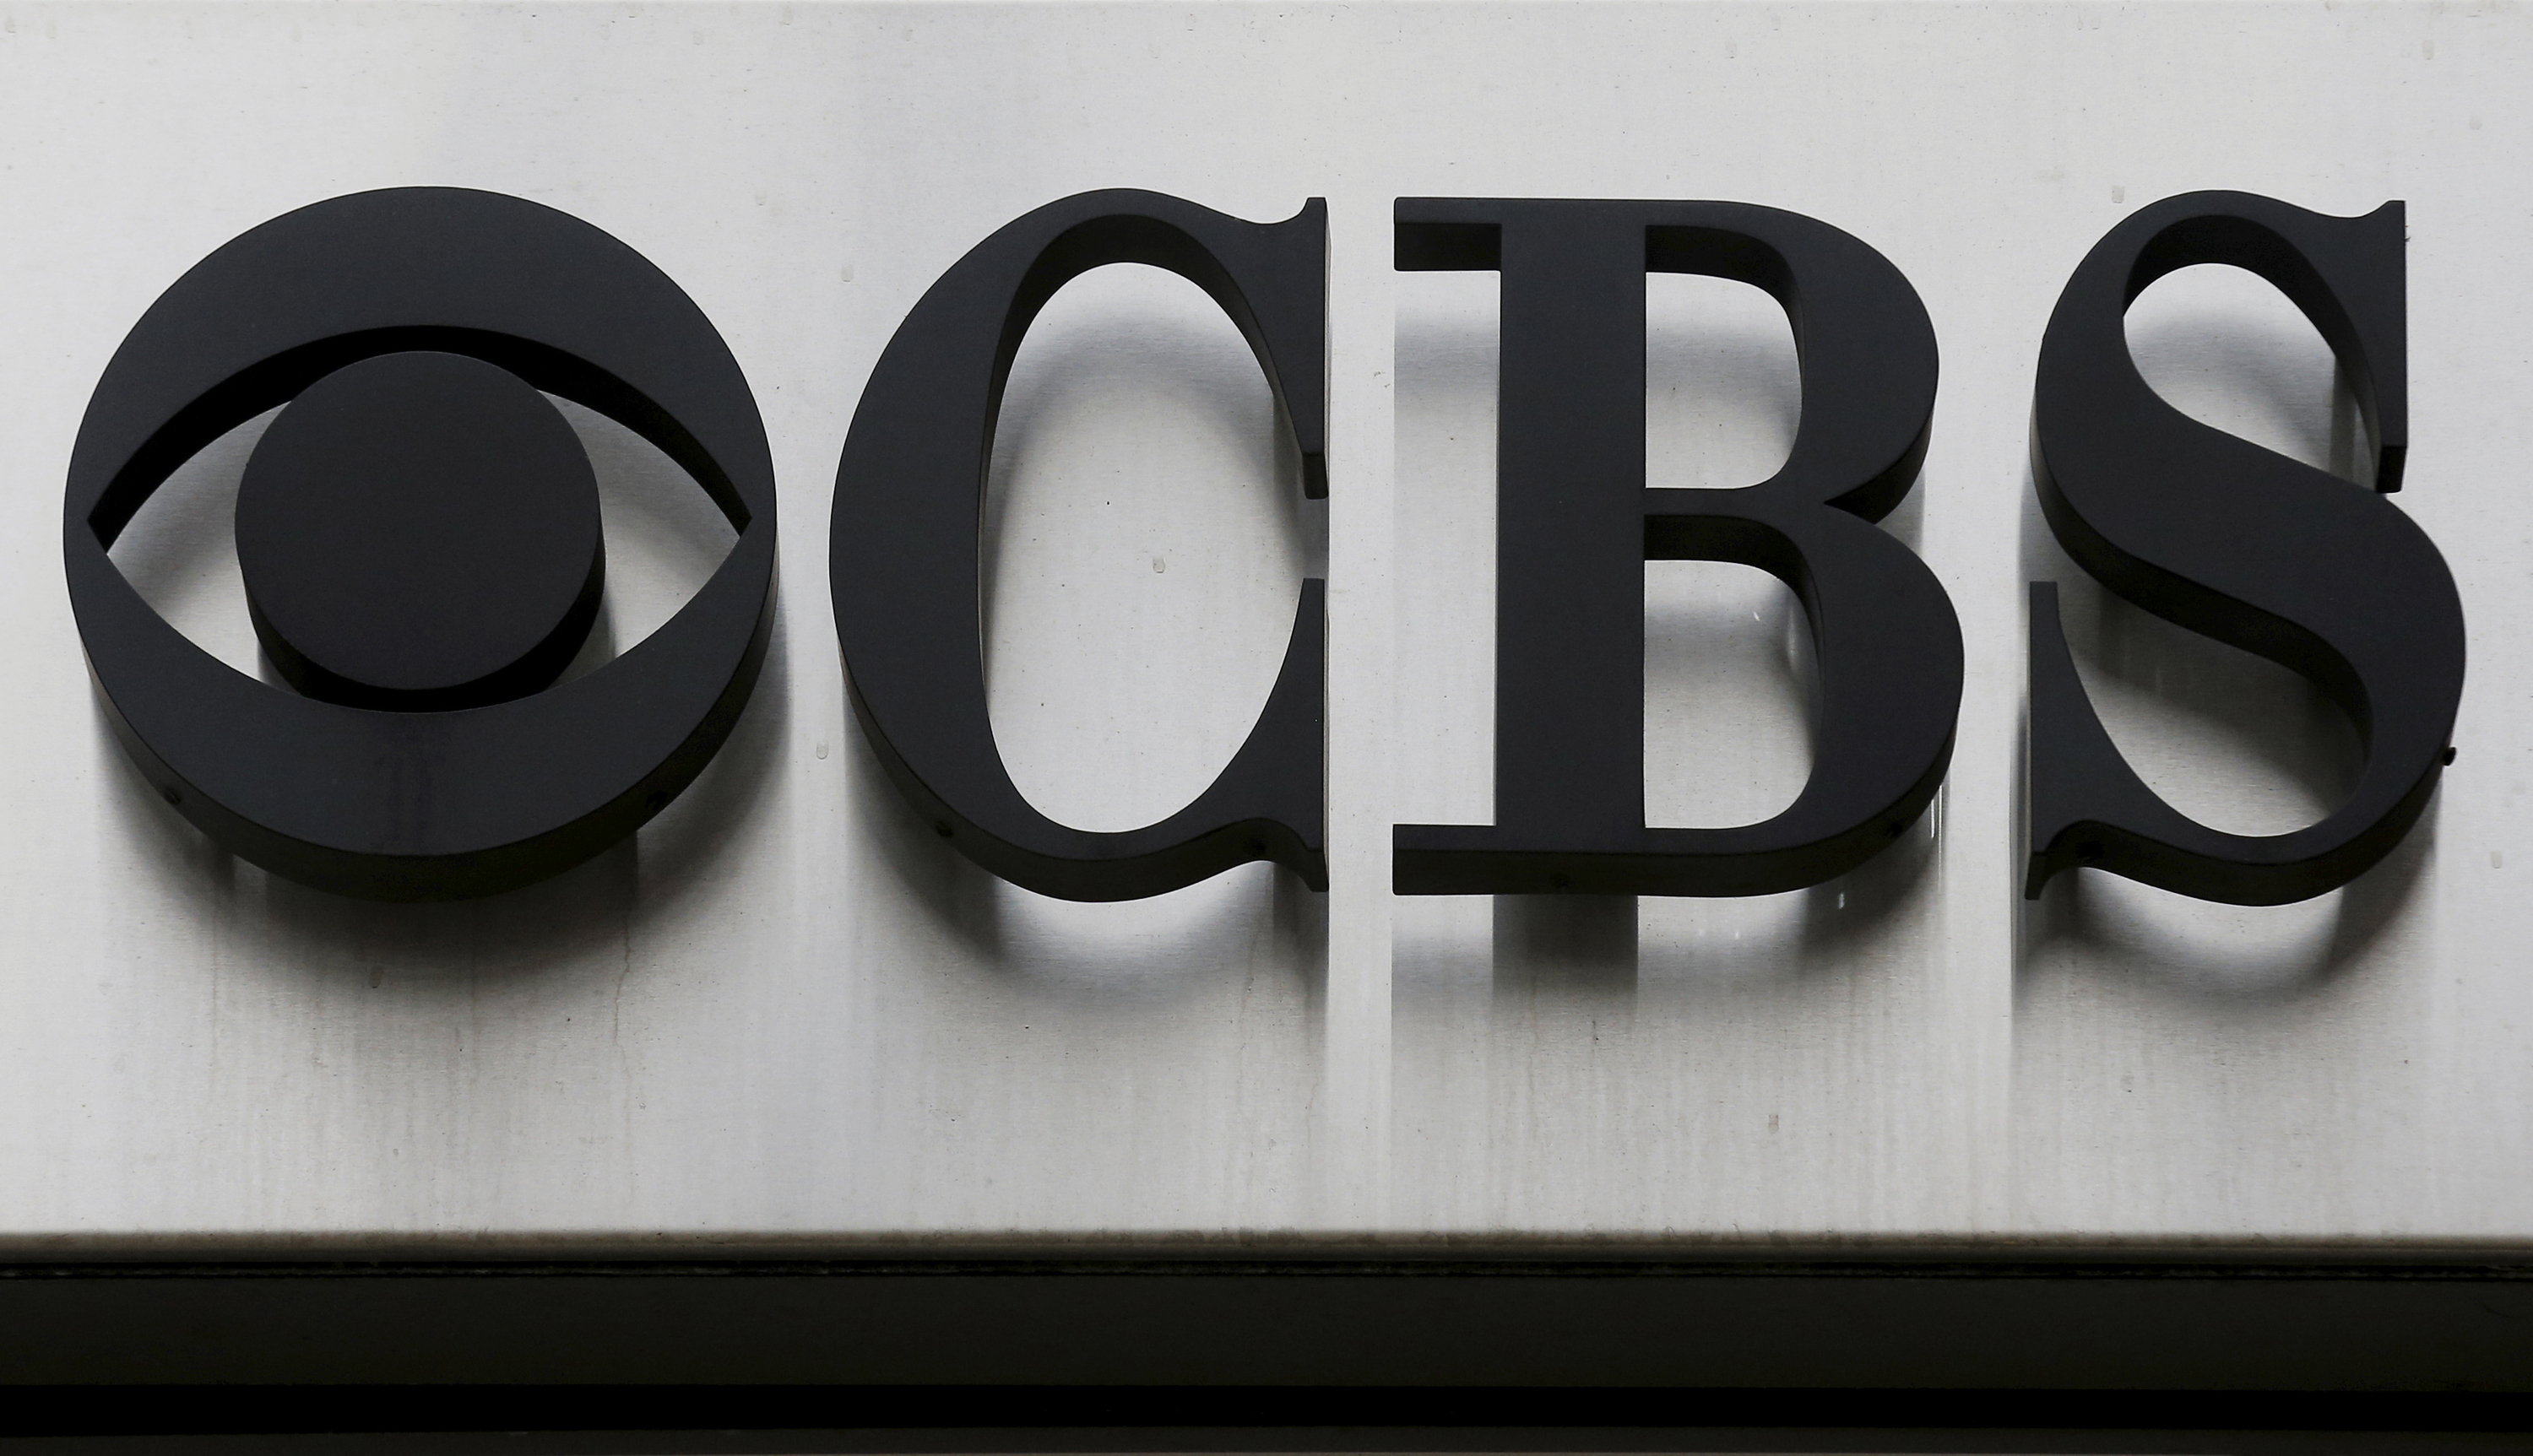 National Amusements Asks CBS, Viacom Boards to Weigh Merger